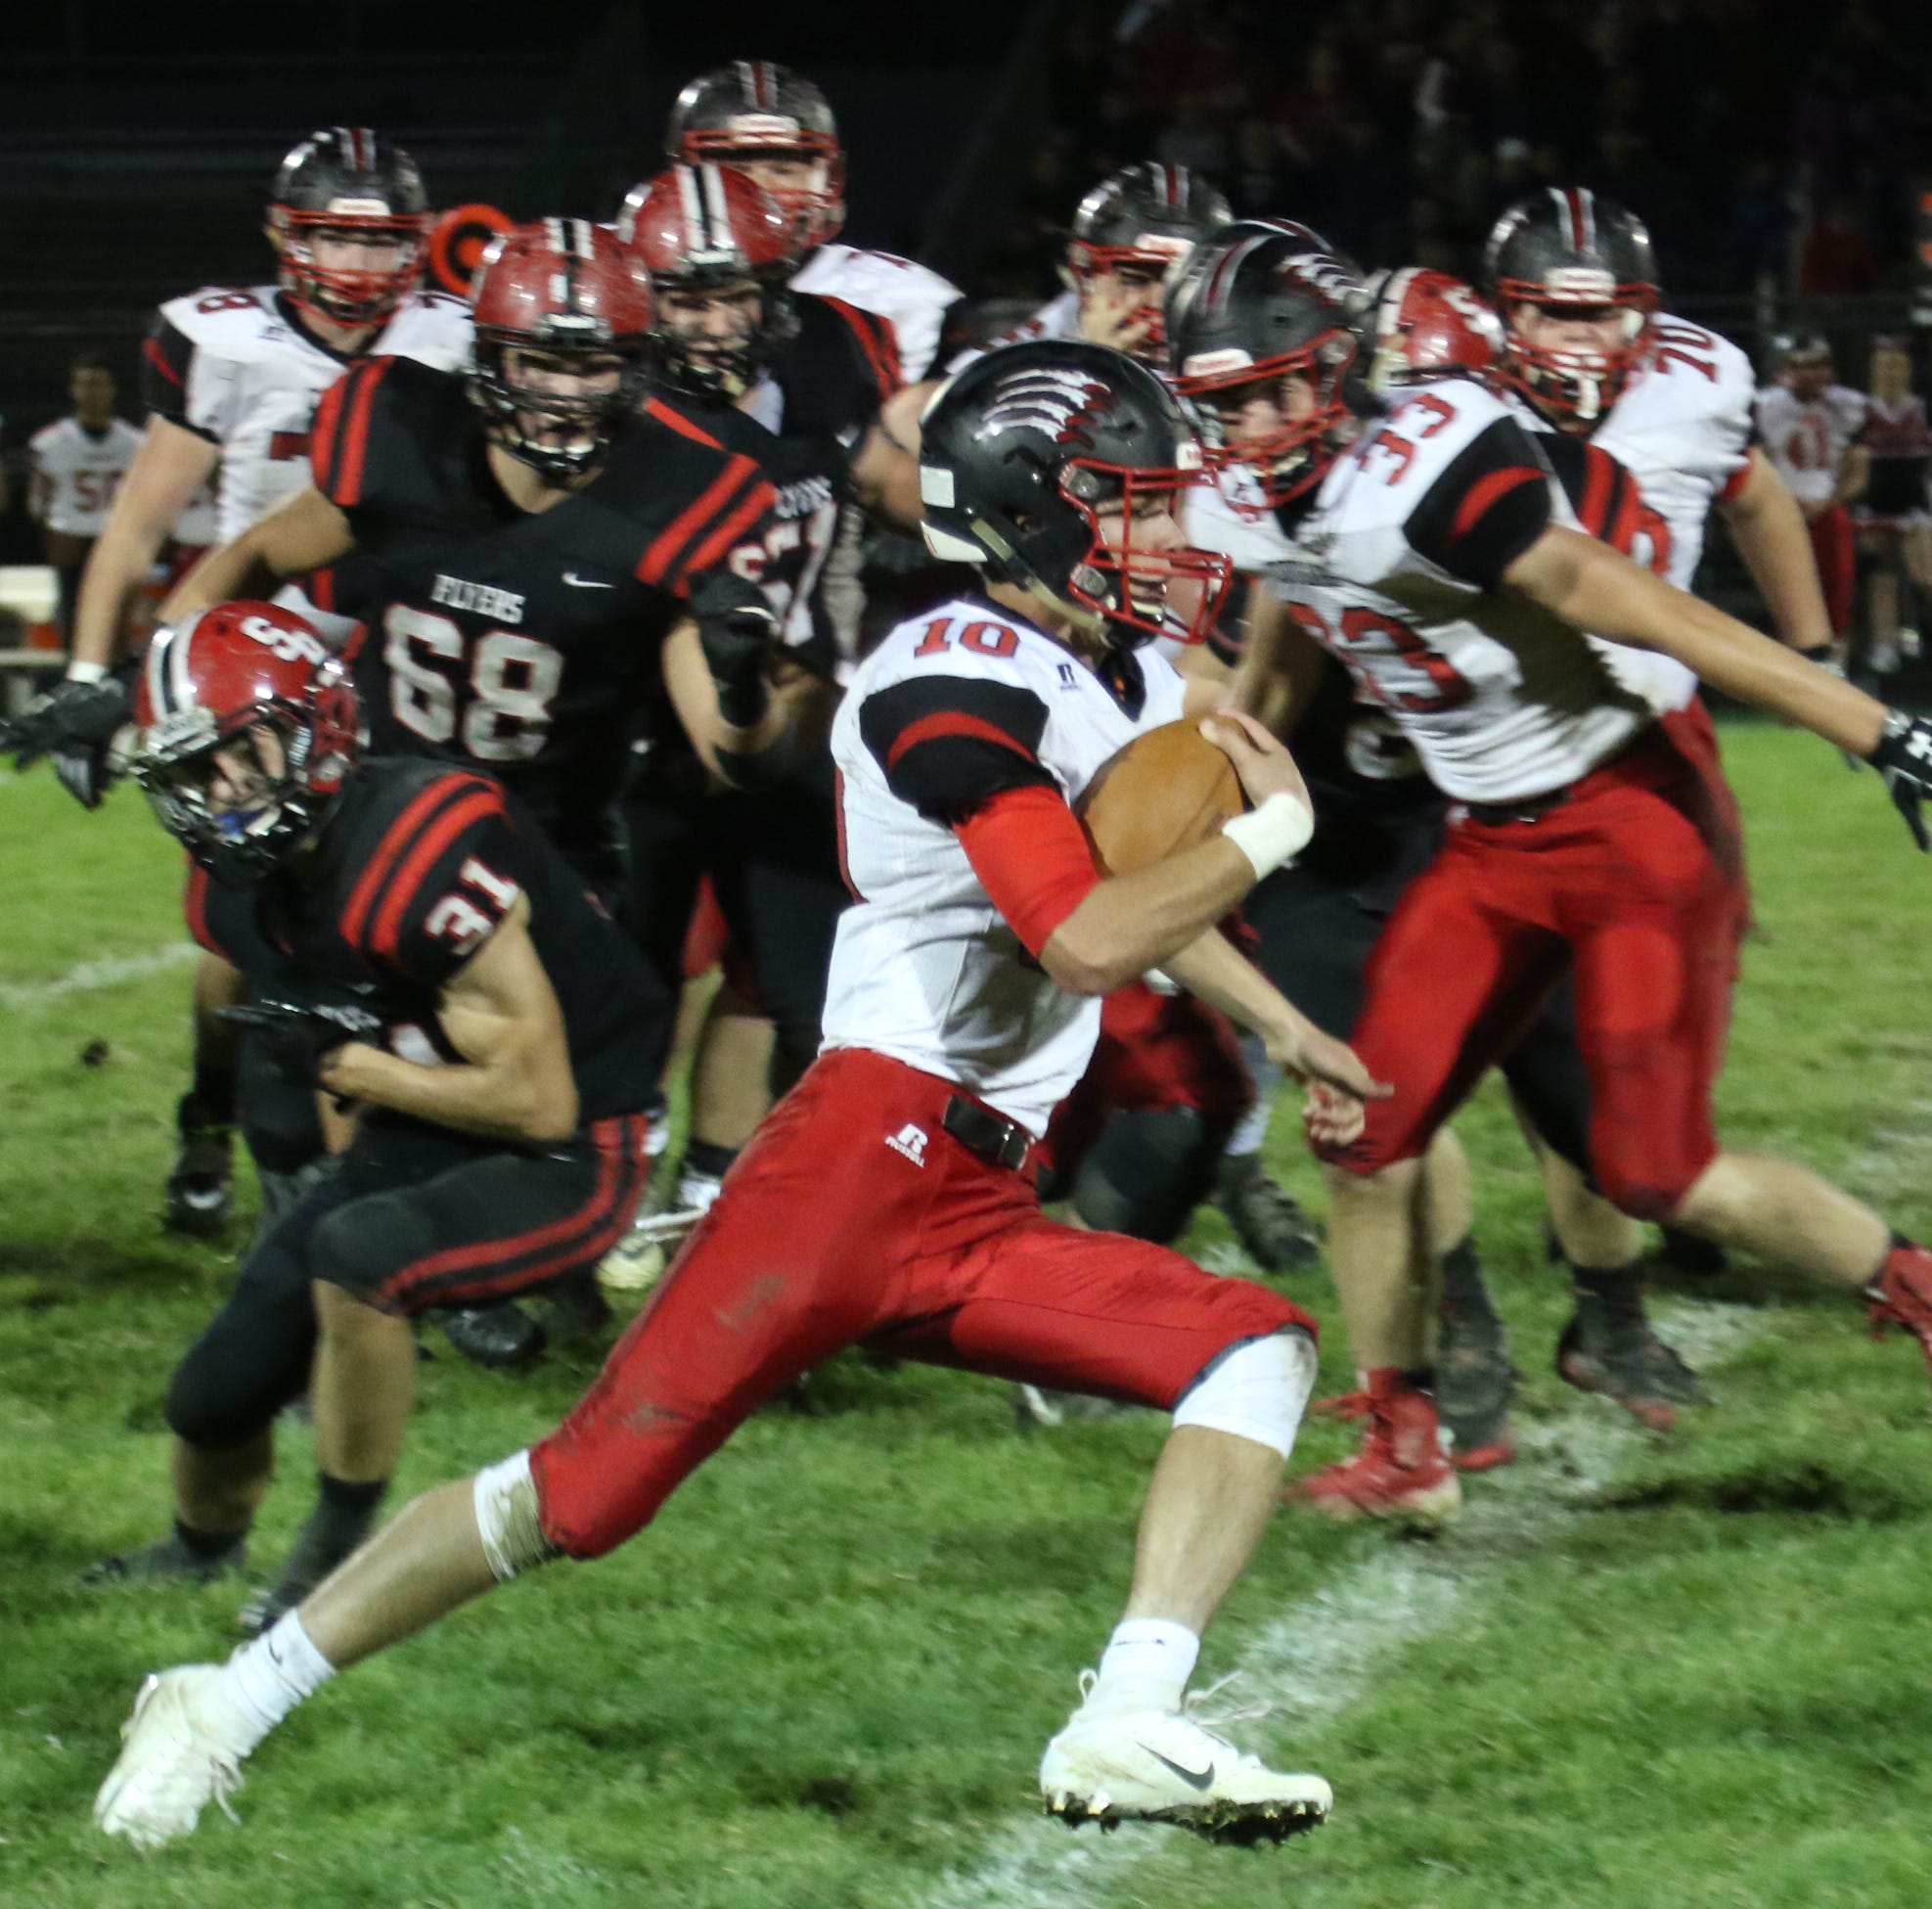 The Crestview Cougars football team played at Norwalk St. Paul on Saturday evening.